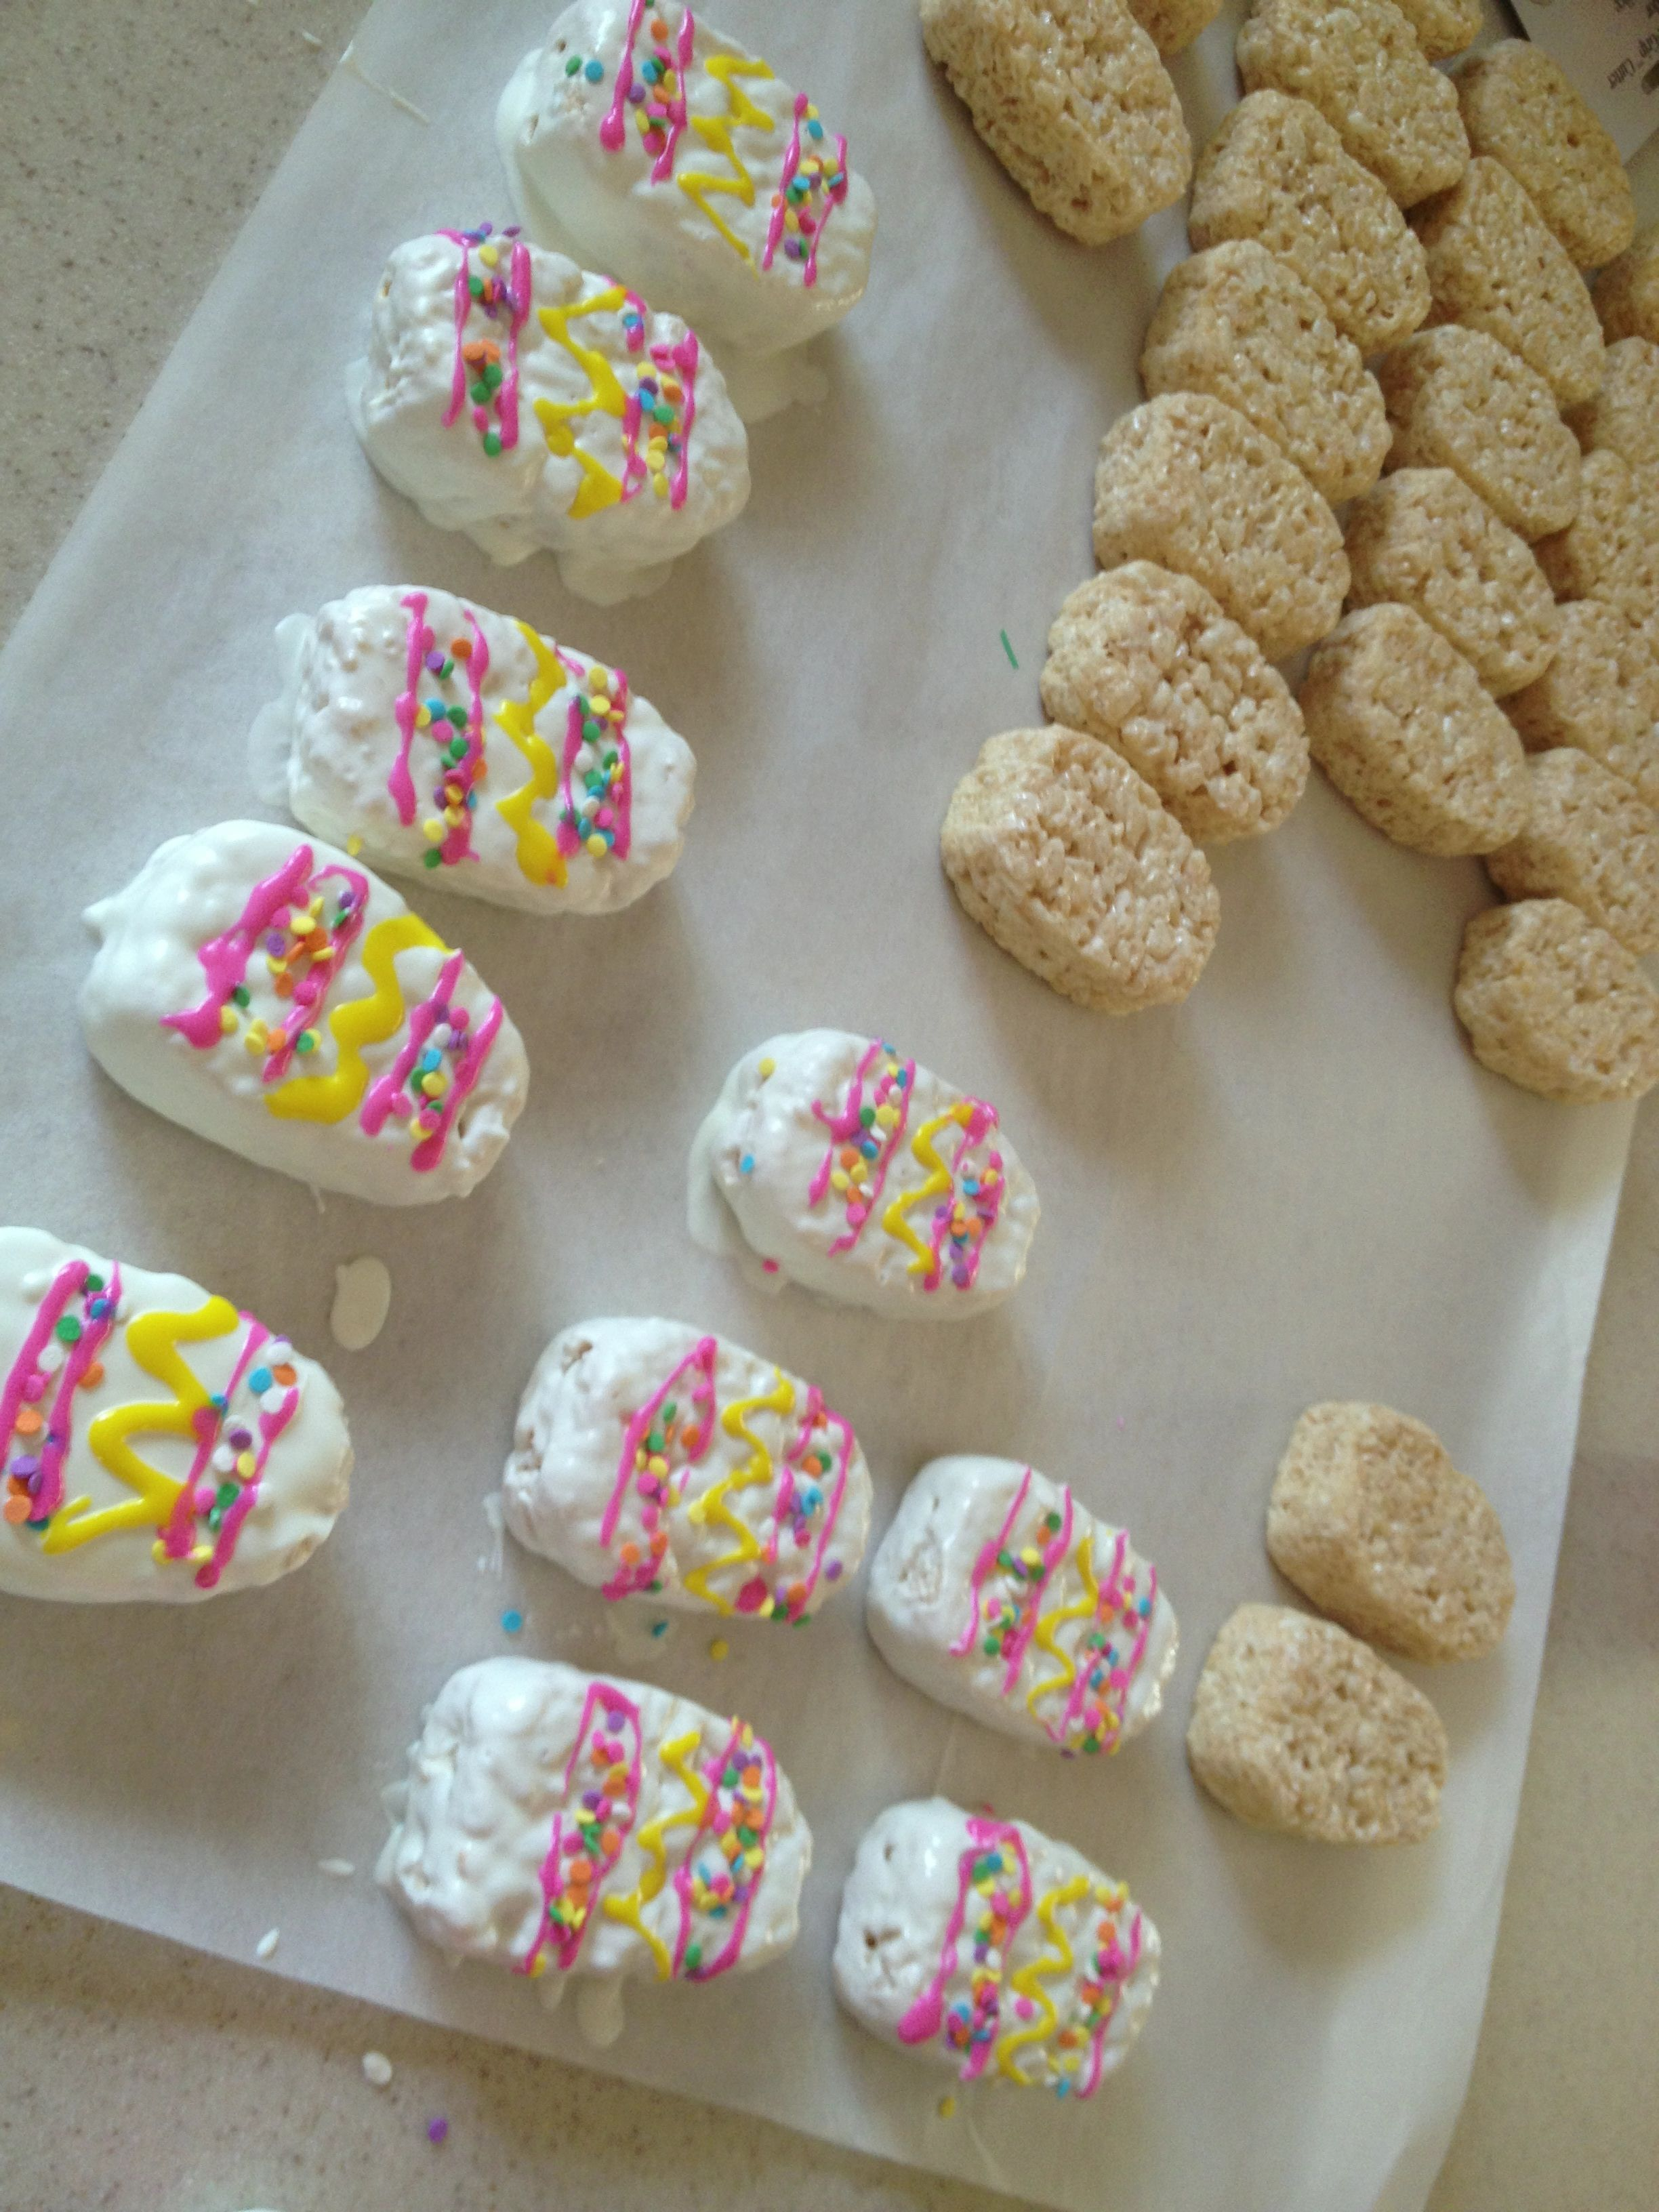 Rice crispy treats shaped like eggs dipped in white chocolate and decorated with sprinkles. I skewered them and wrapped with a clear cellophane bag!